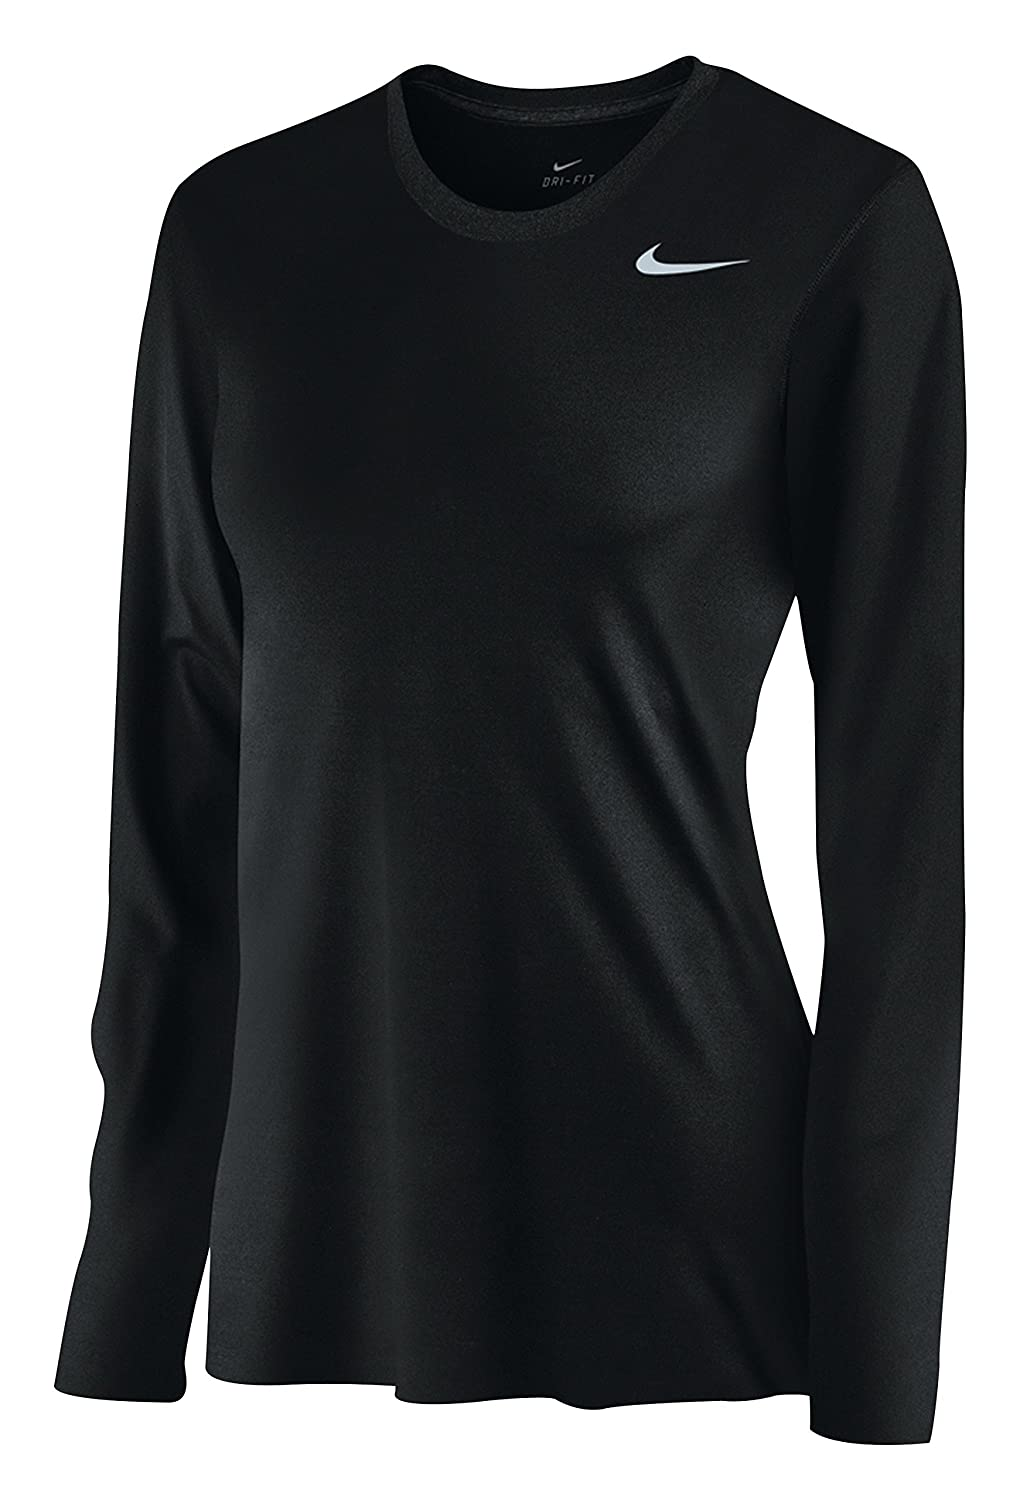 de7d1180 Amazon.com: Nike Womens Dri-Fit Fitness Workout T-Shirt: Clothing